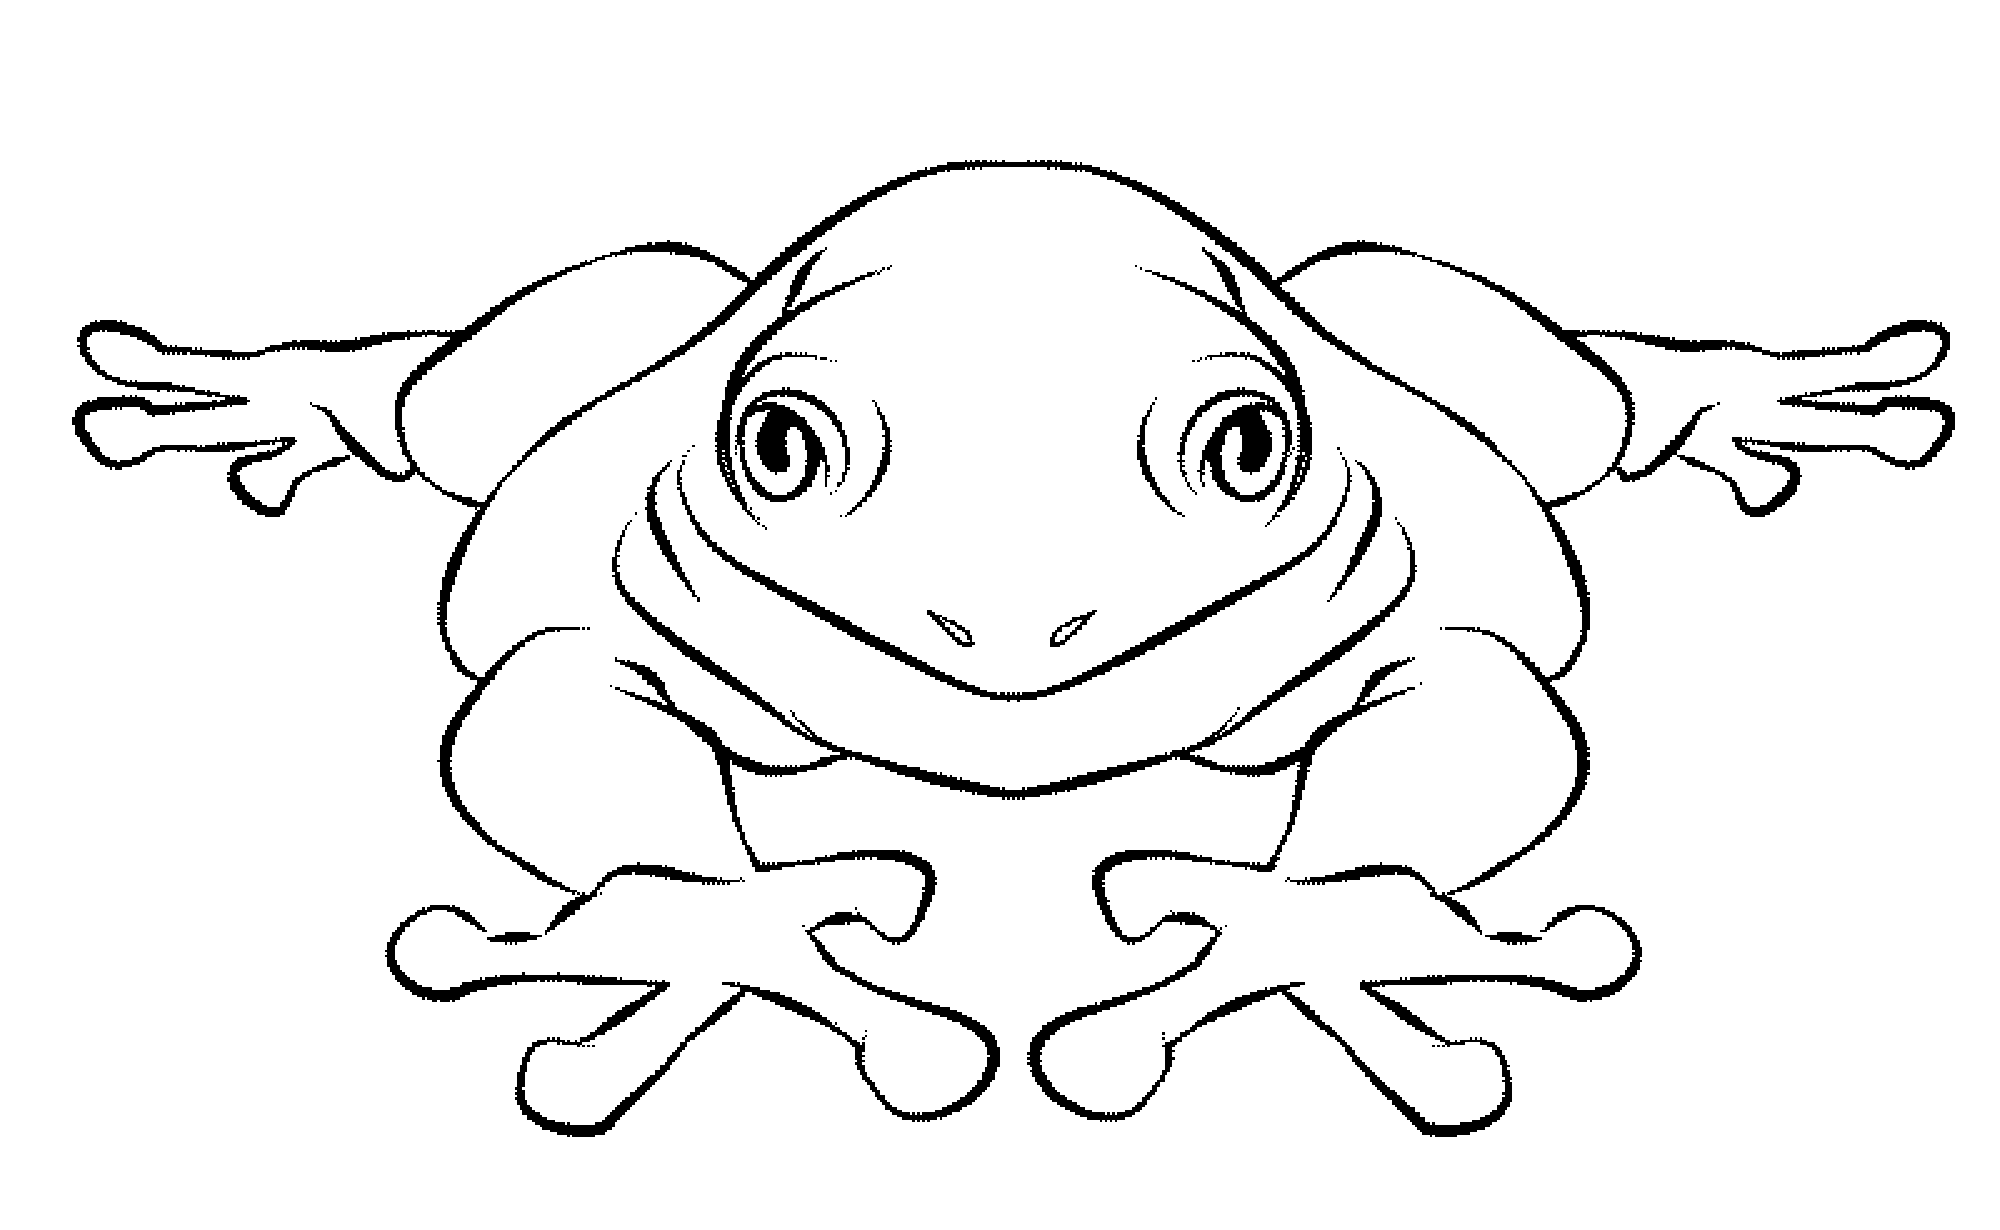 coloring book picture of a frog print download frog coloring pages theme for kids of picture frog coloring a book